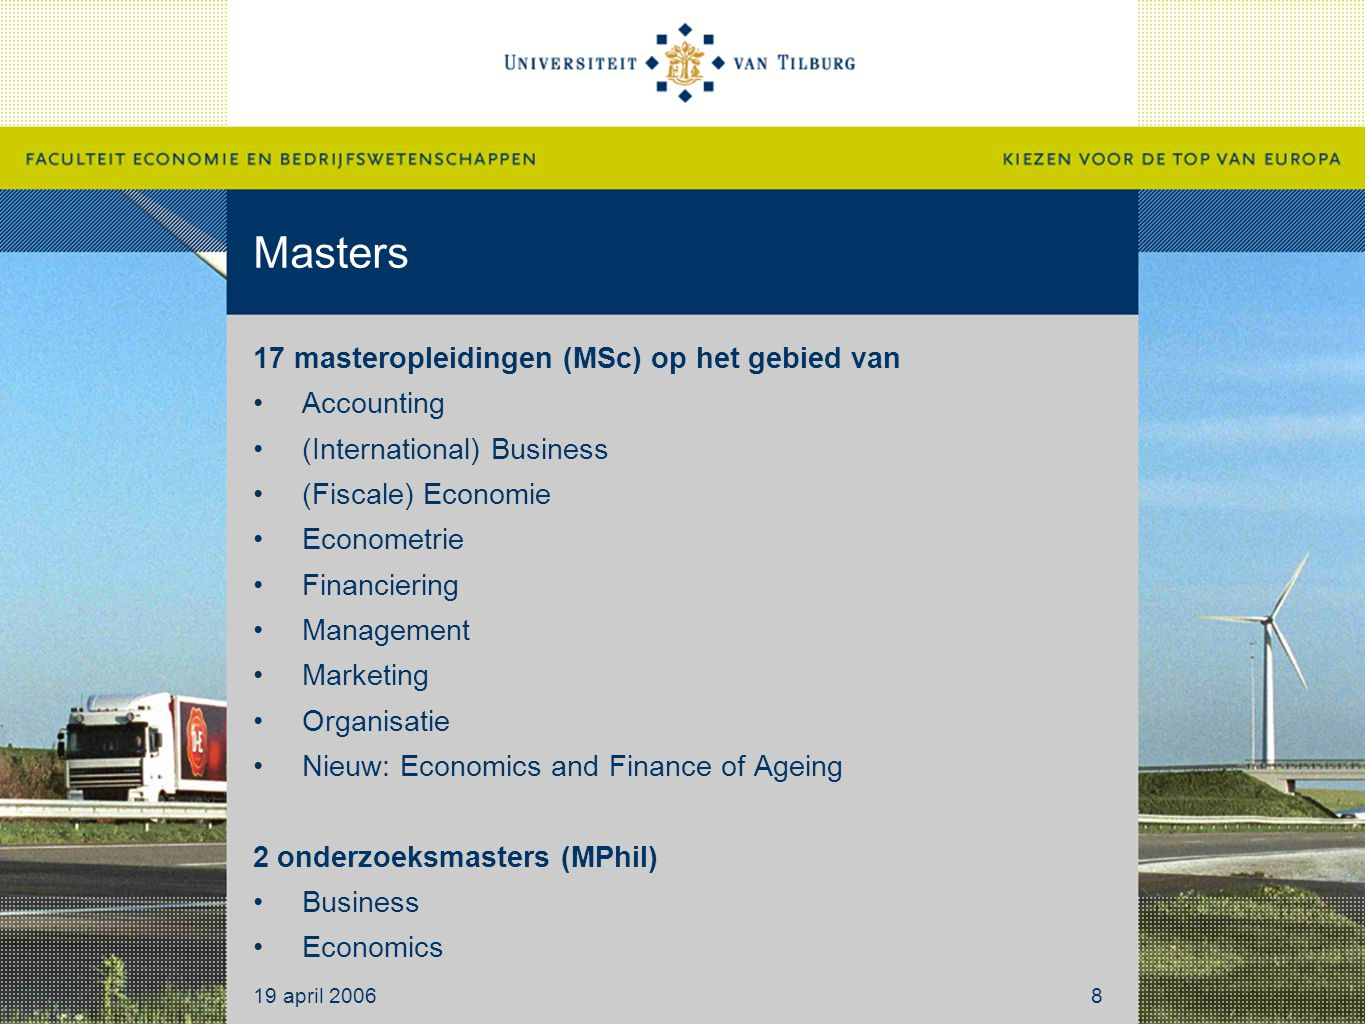 Masters 17 masteropleidingen (MSc) op het gebied van Accounting (International) Business (Fiscale) Economie Econometrie Financiering Management Marketing Organisatie Nieuw: Economics and Finance of Ageing 2 onderzoeksmasters (MPhil) Business Economics 19 april 20068